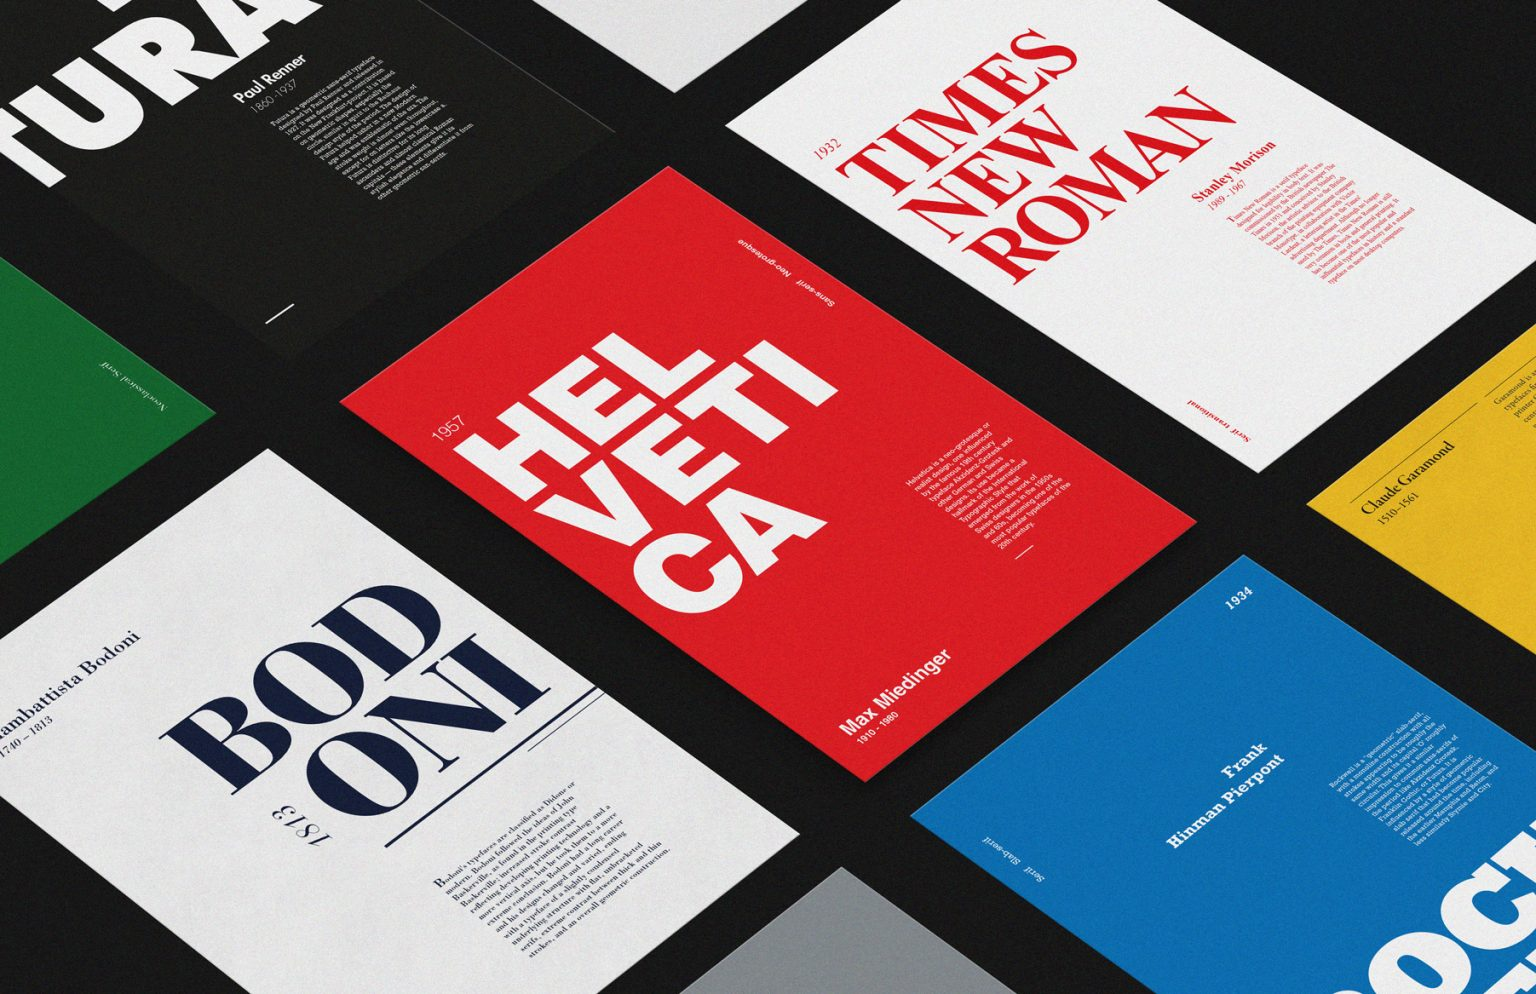 Typeface-poster perspective